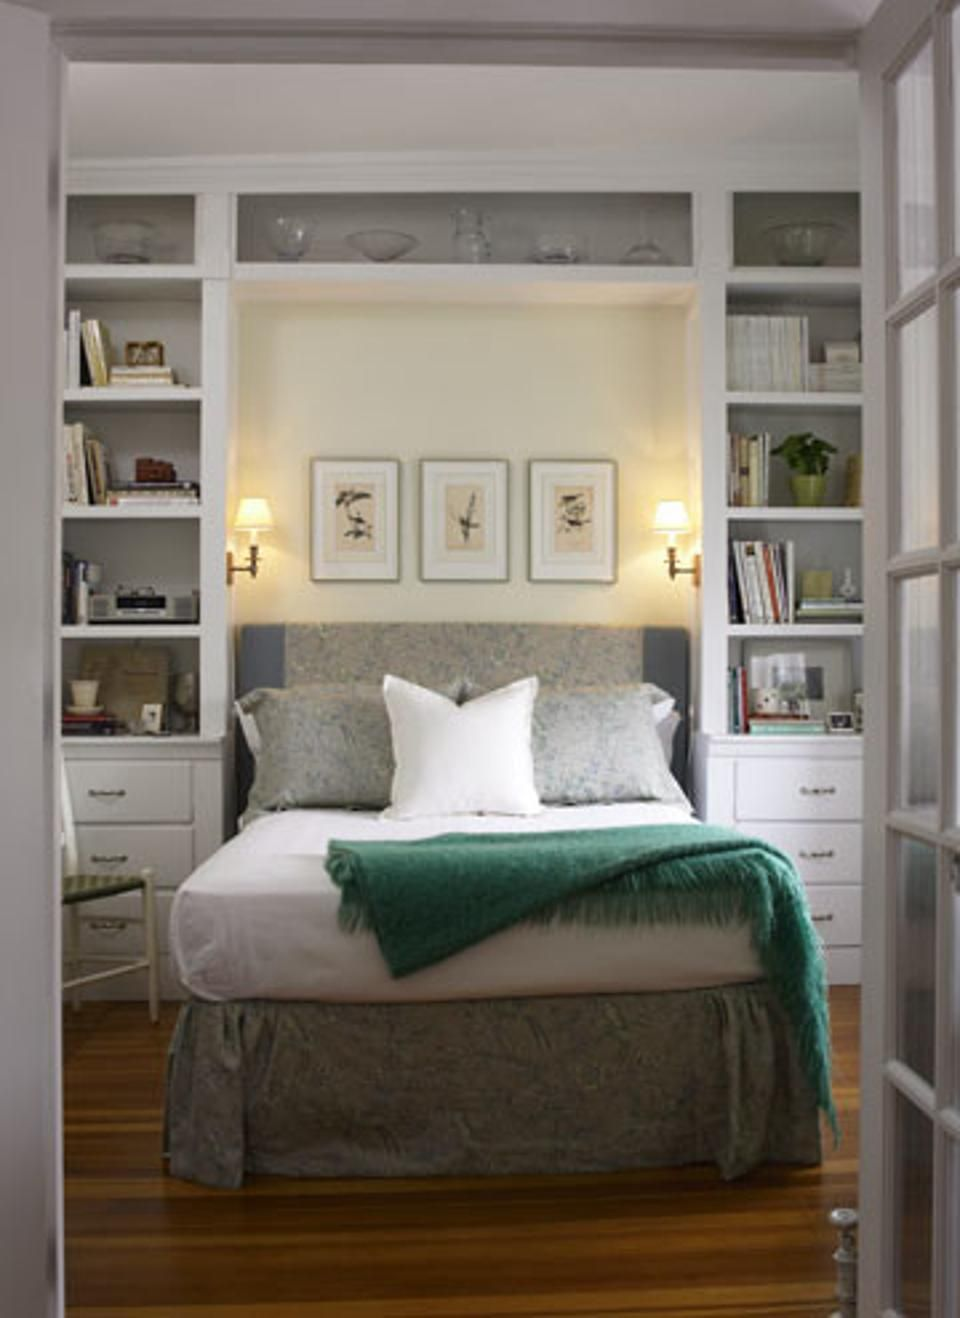 Loft bedroom storage ideas   Tips To Make A Small Bedroom Look Great  Compact Boudoir and